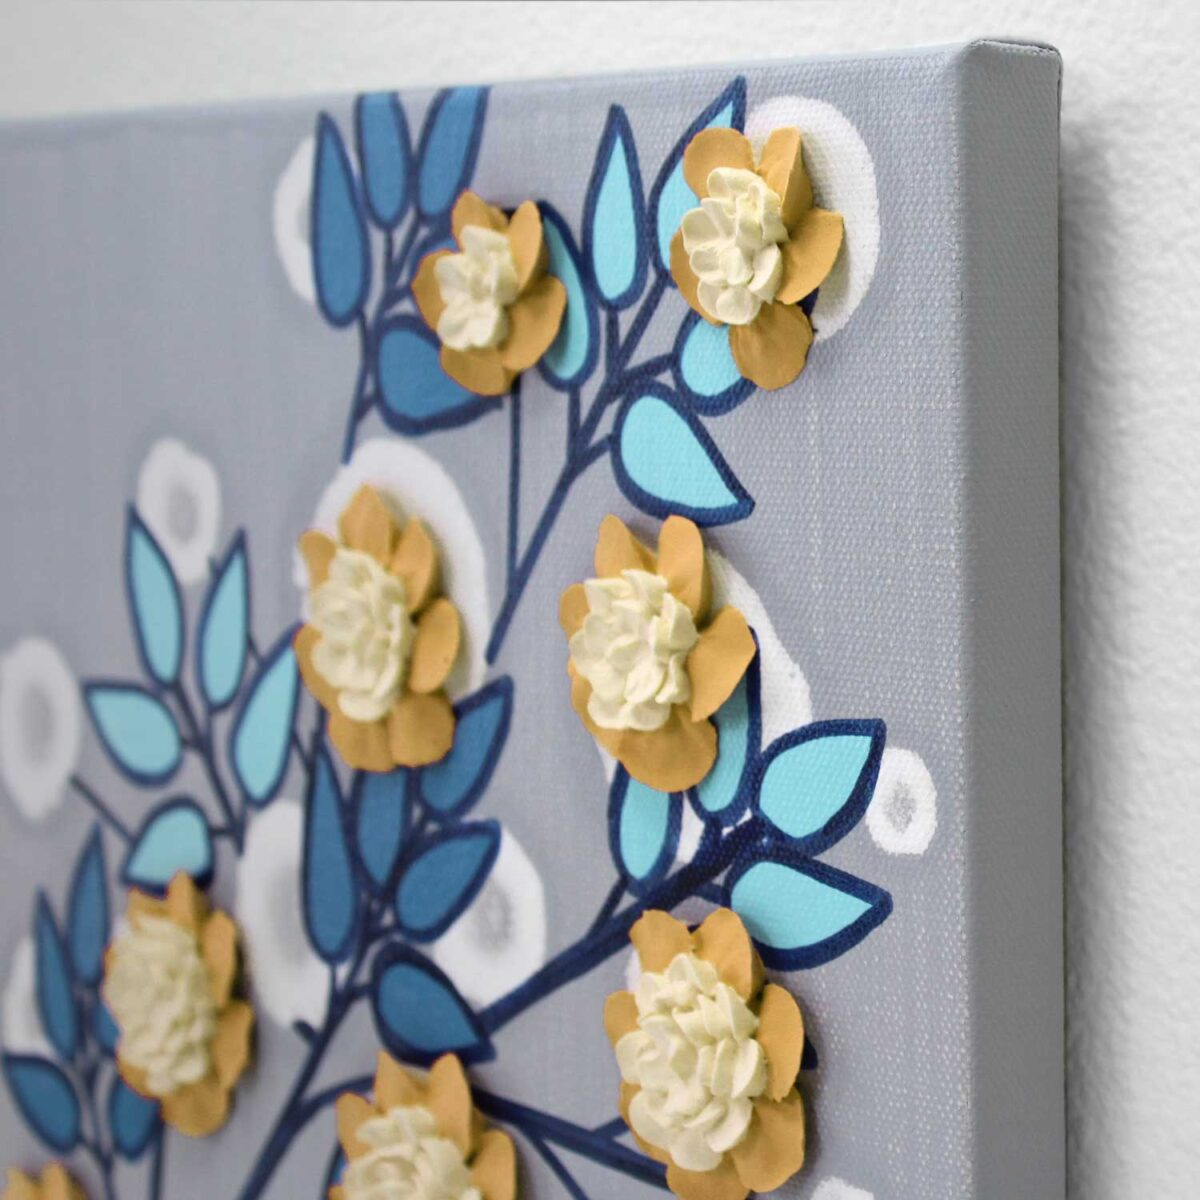 Angle view of wall art of flower branch in yellow, aqua, and indigo